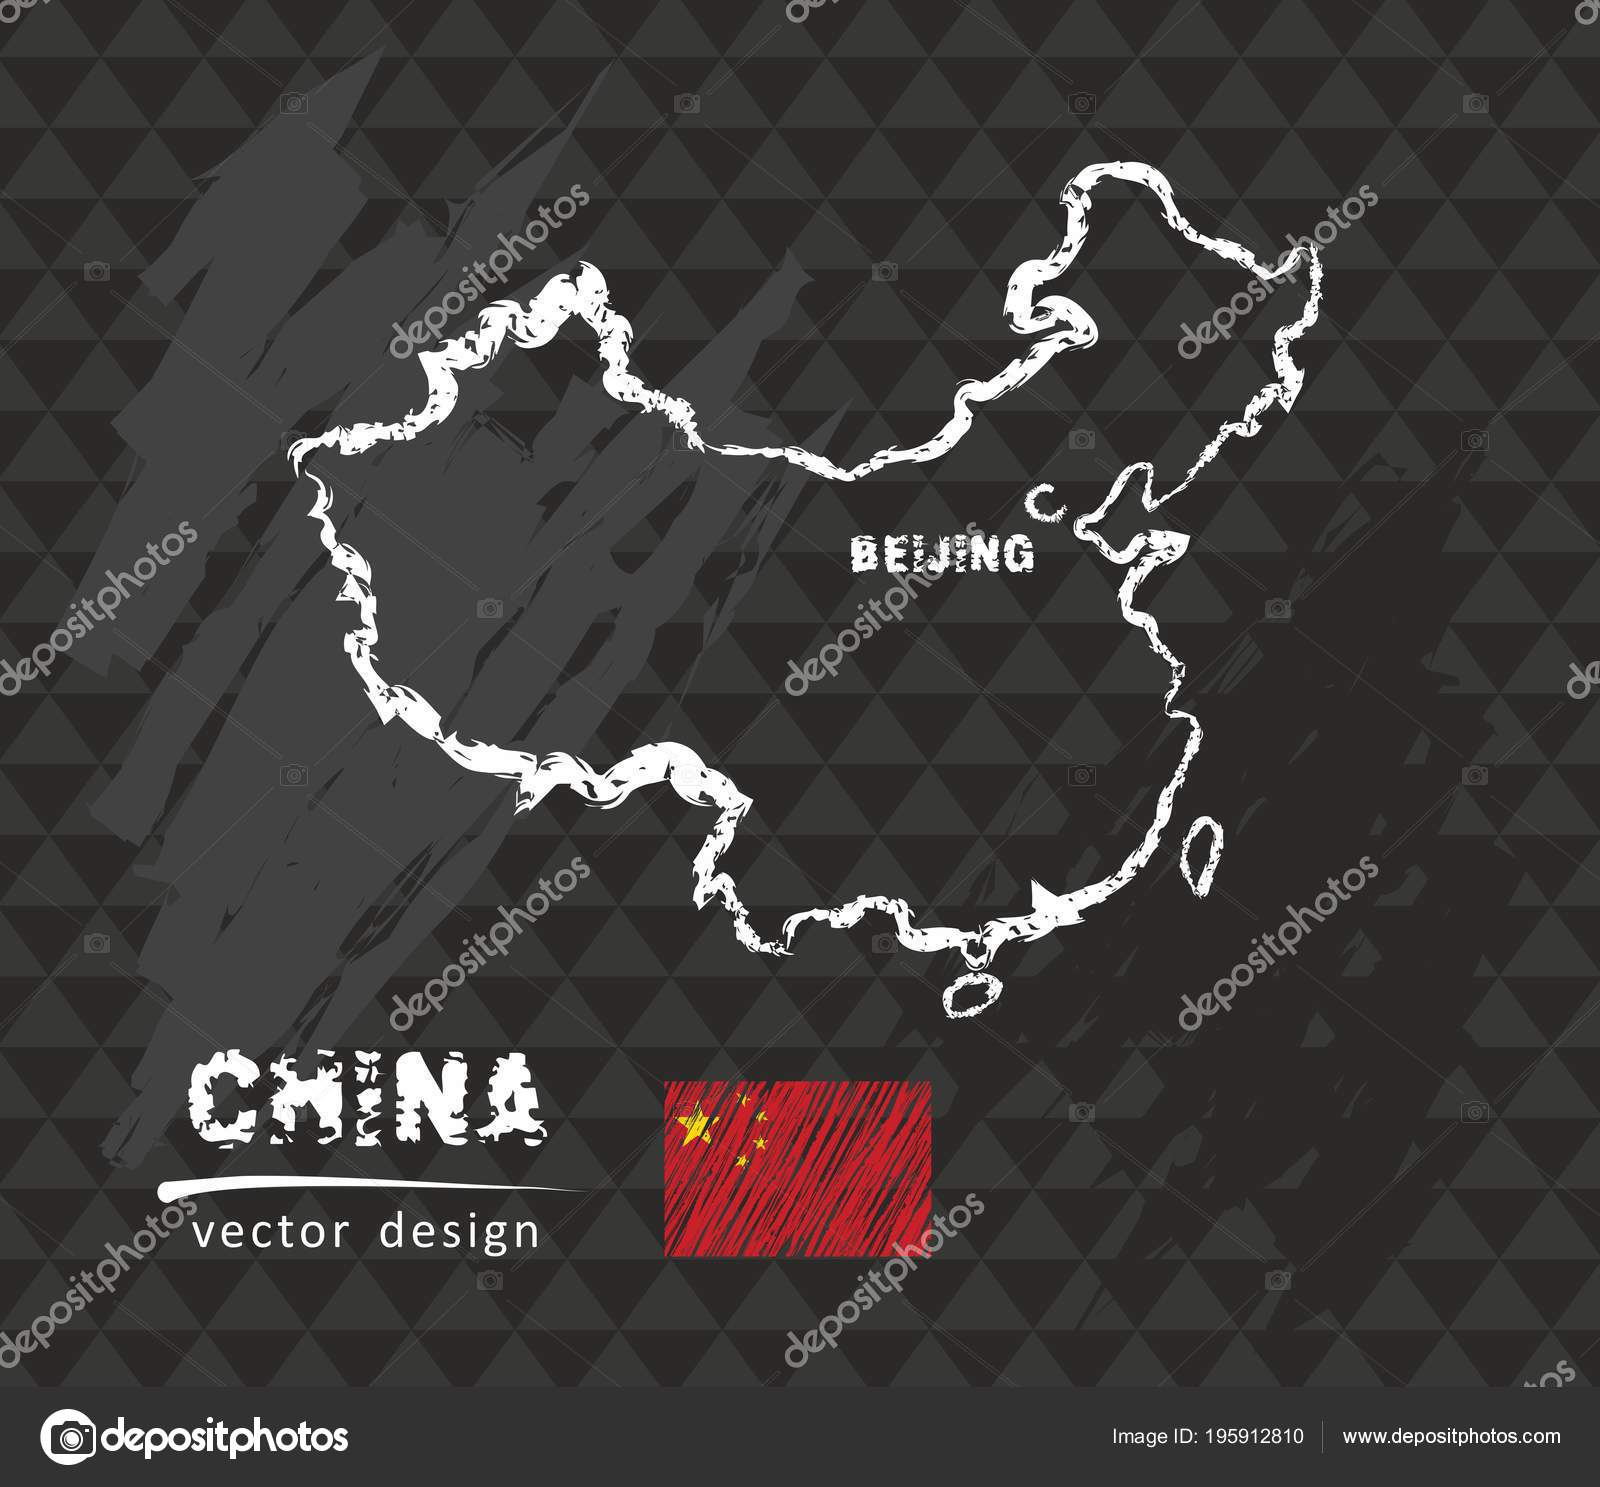 Mapa China Ilustración Vector Dibujo Tiza — Vector de stock ...